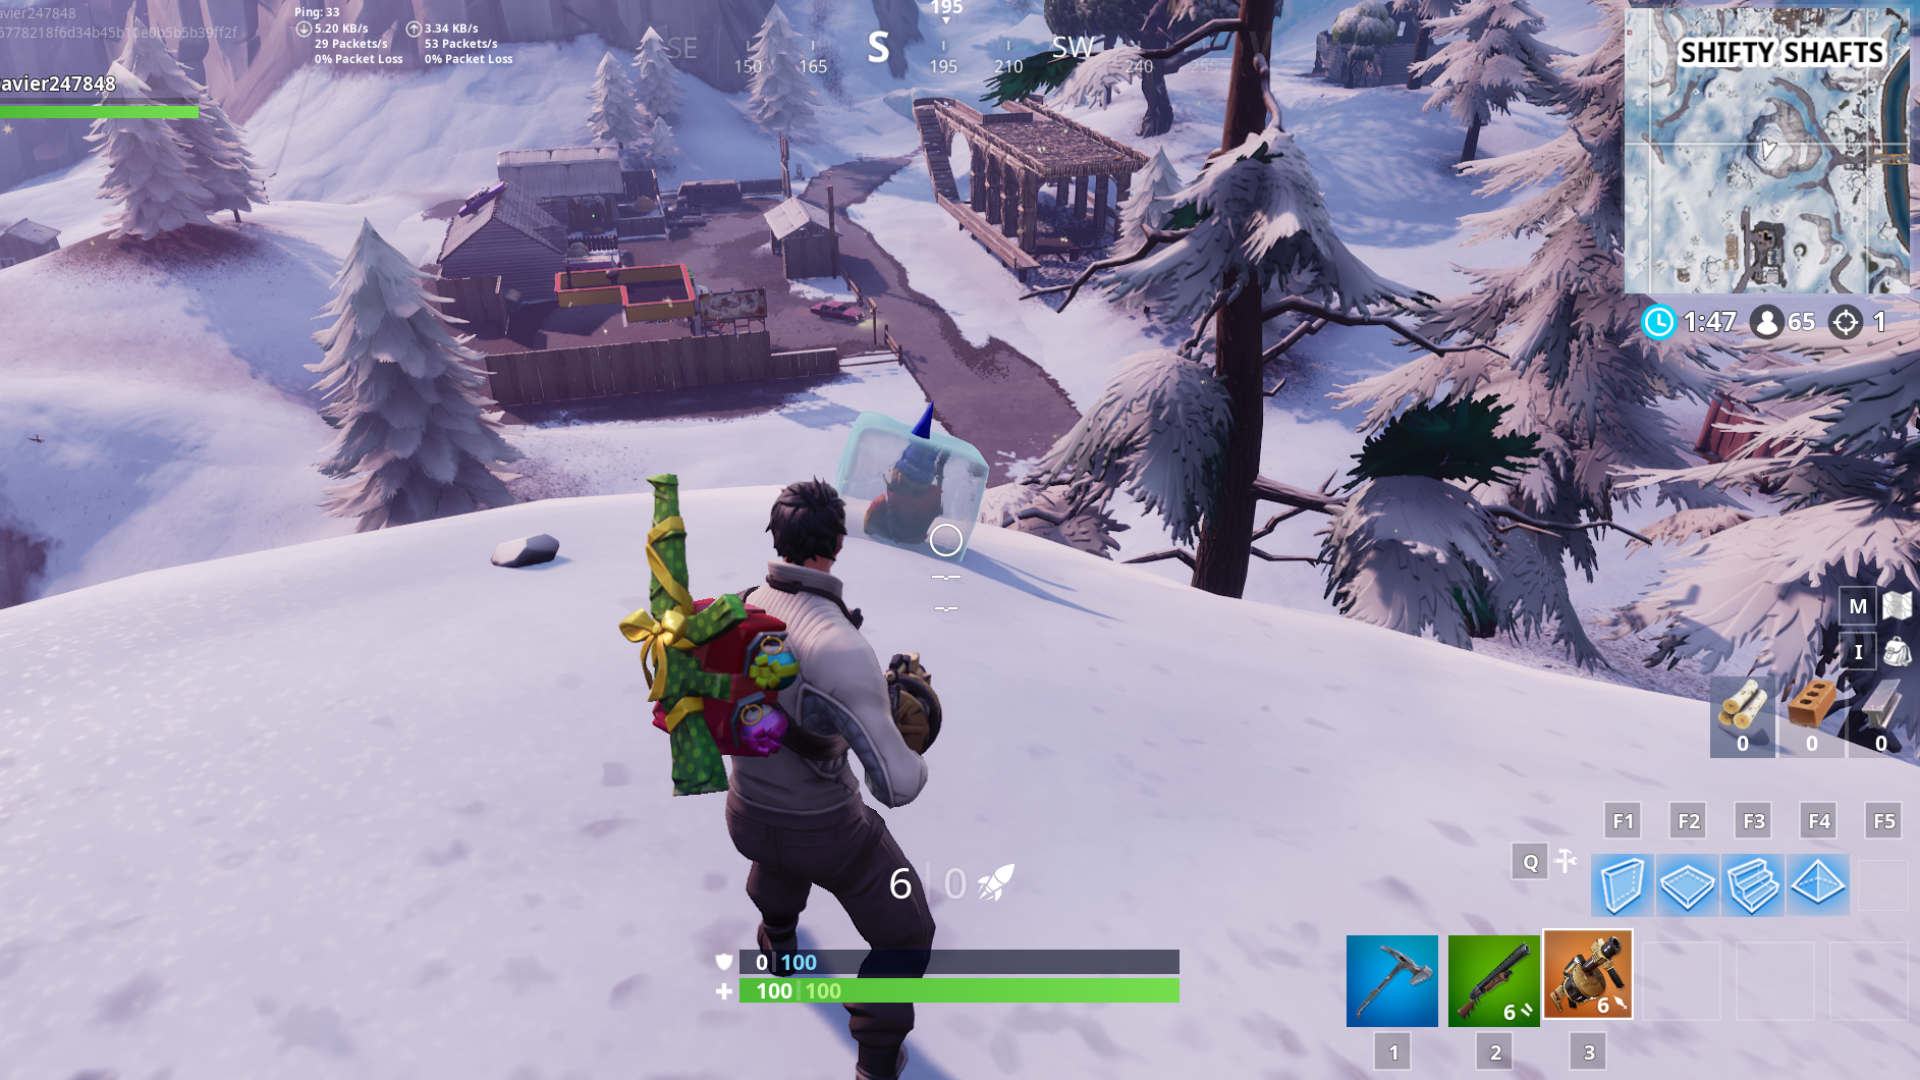 gnome in shifty shafts